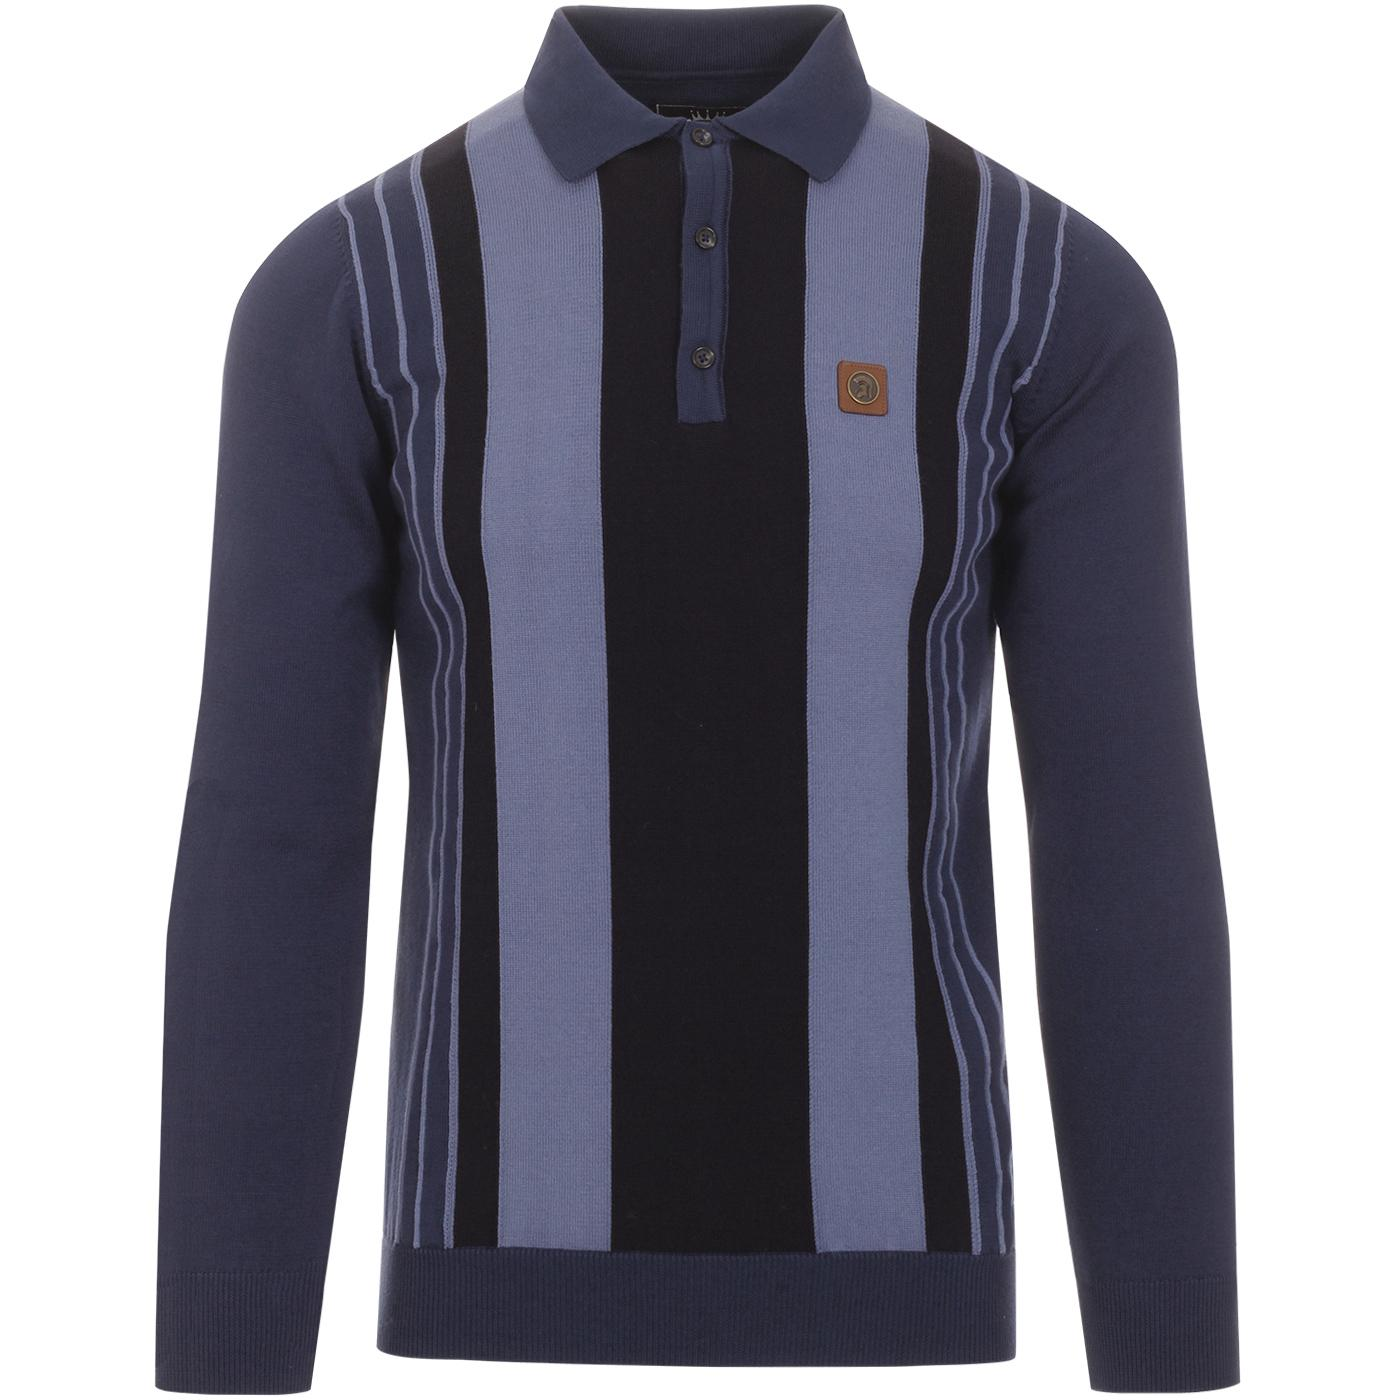 TROJAN RECORDS Mod Pinstripe Panel Knit Polo NAVY